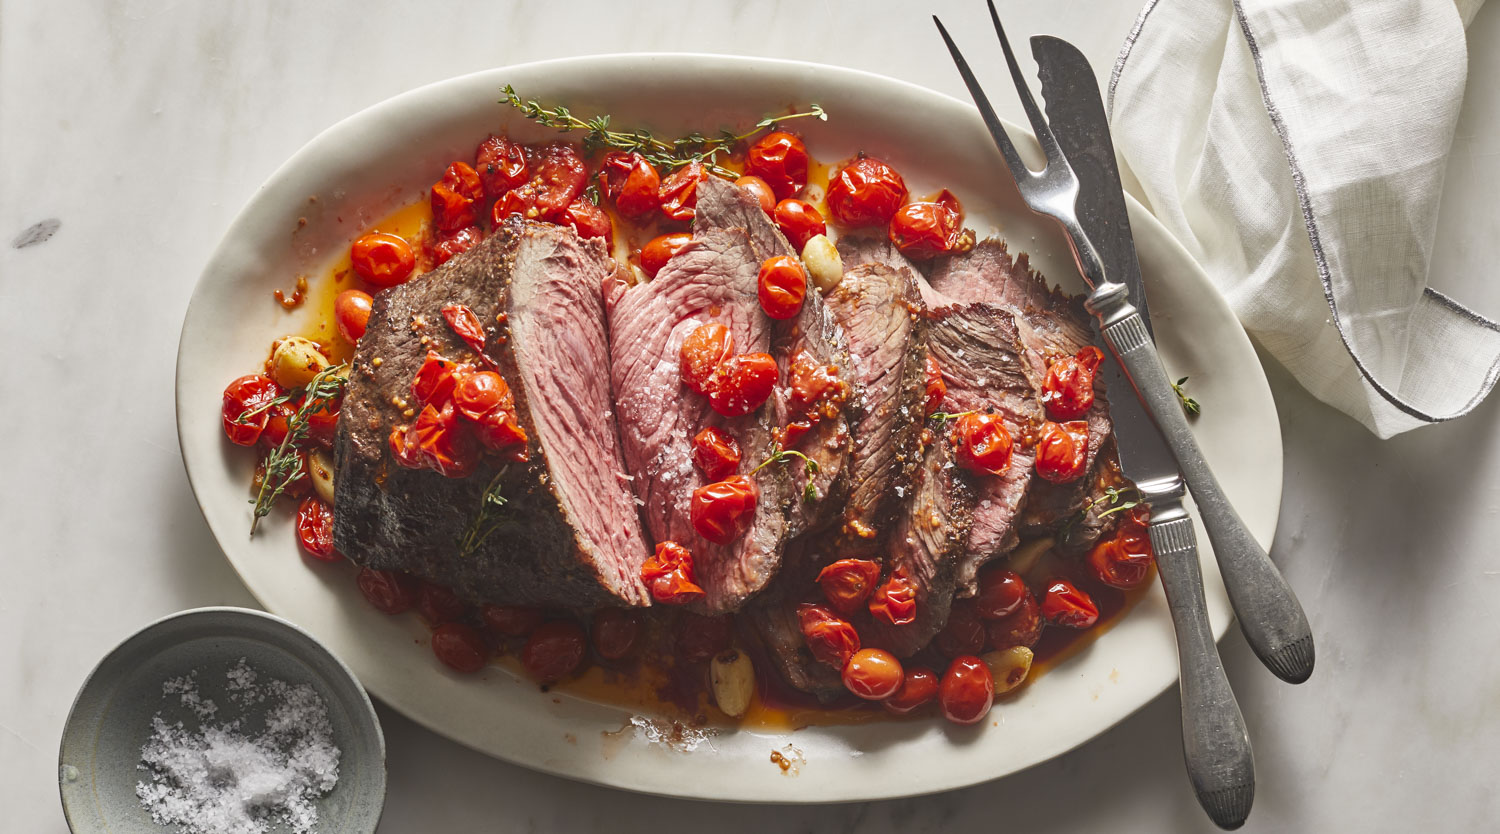 Clone of Roast Beef With Slow-Cooked Tomatoes and Garlic (Roasting Recipes)